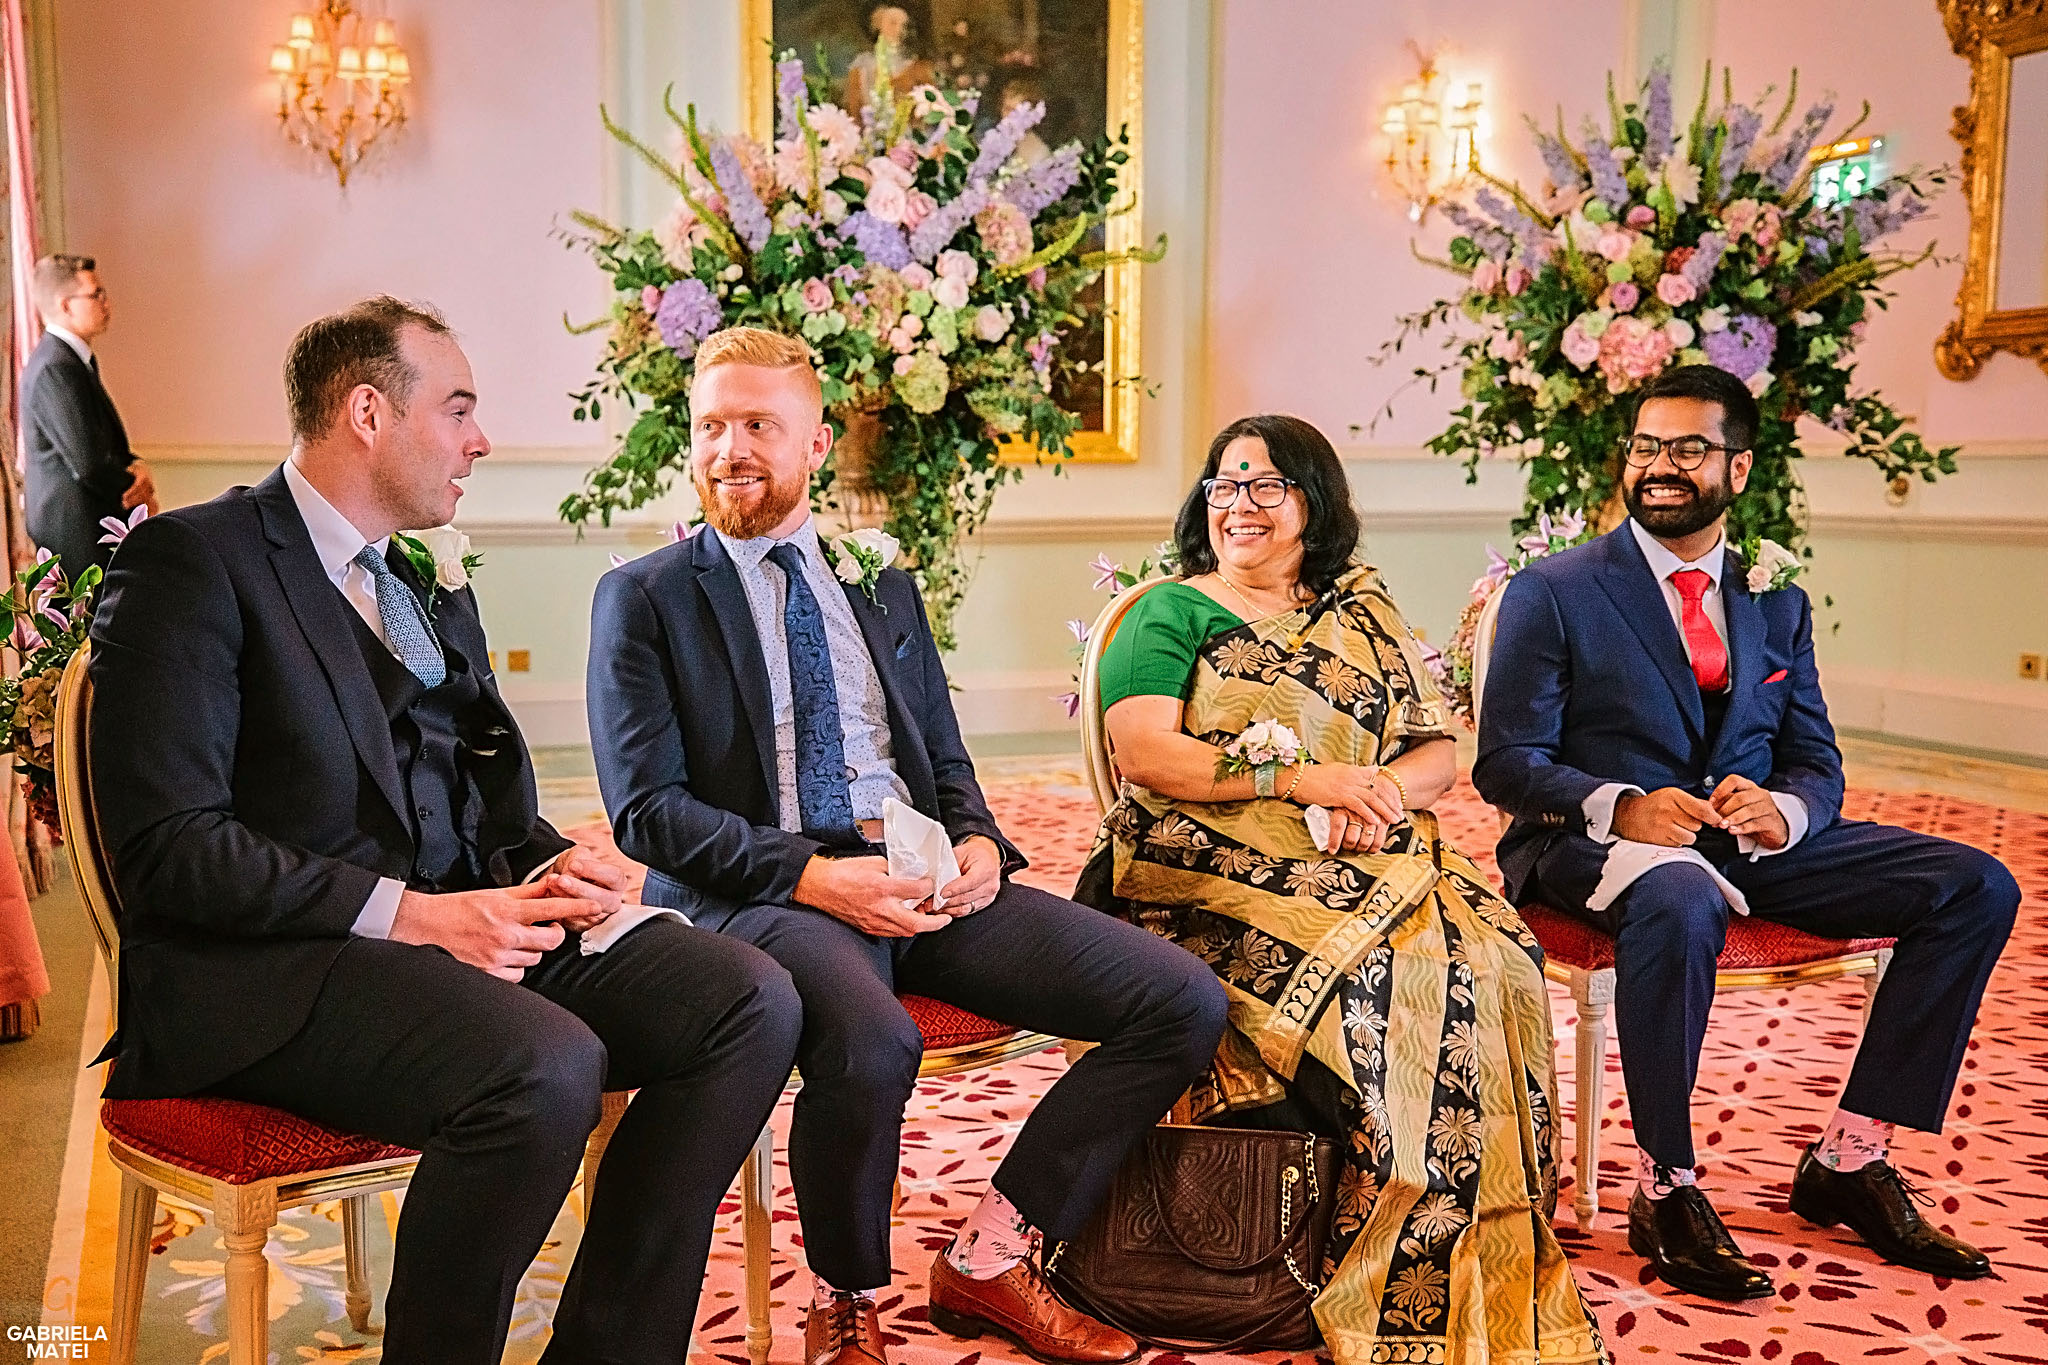 Wedding guests smiling during civil wedding in the Music Room at The Ritz in London